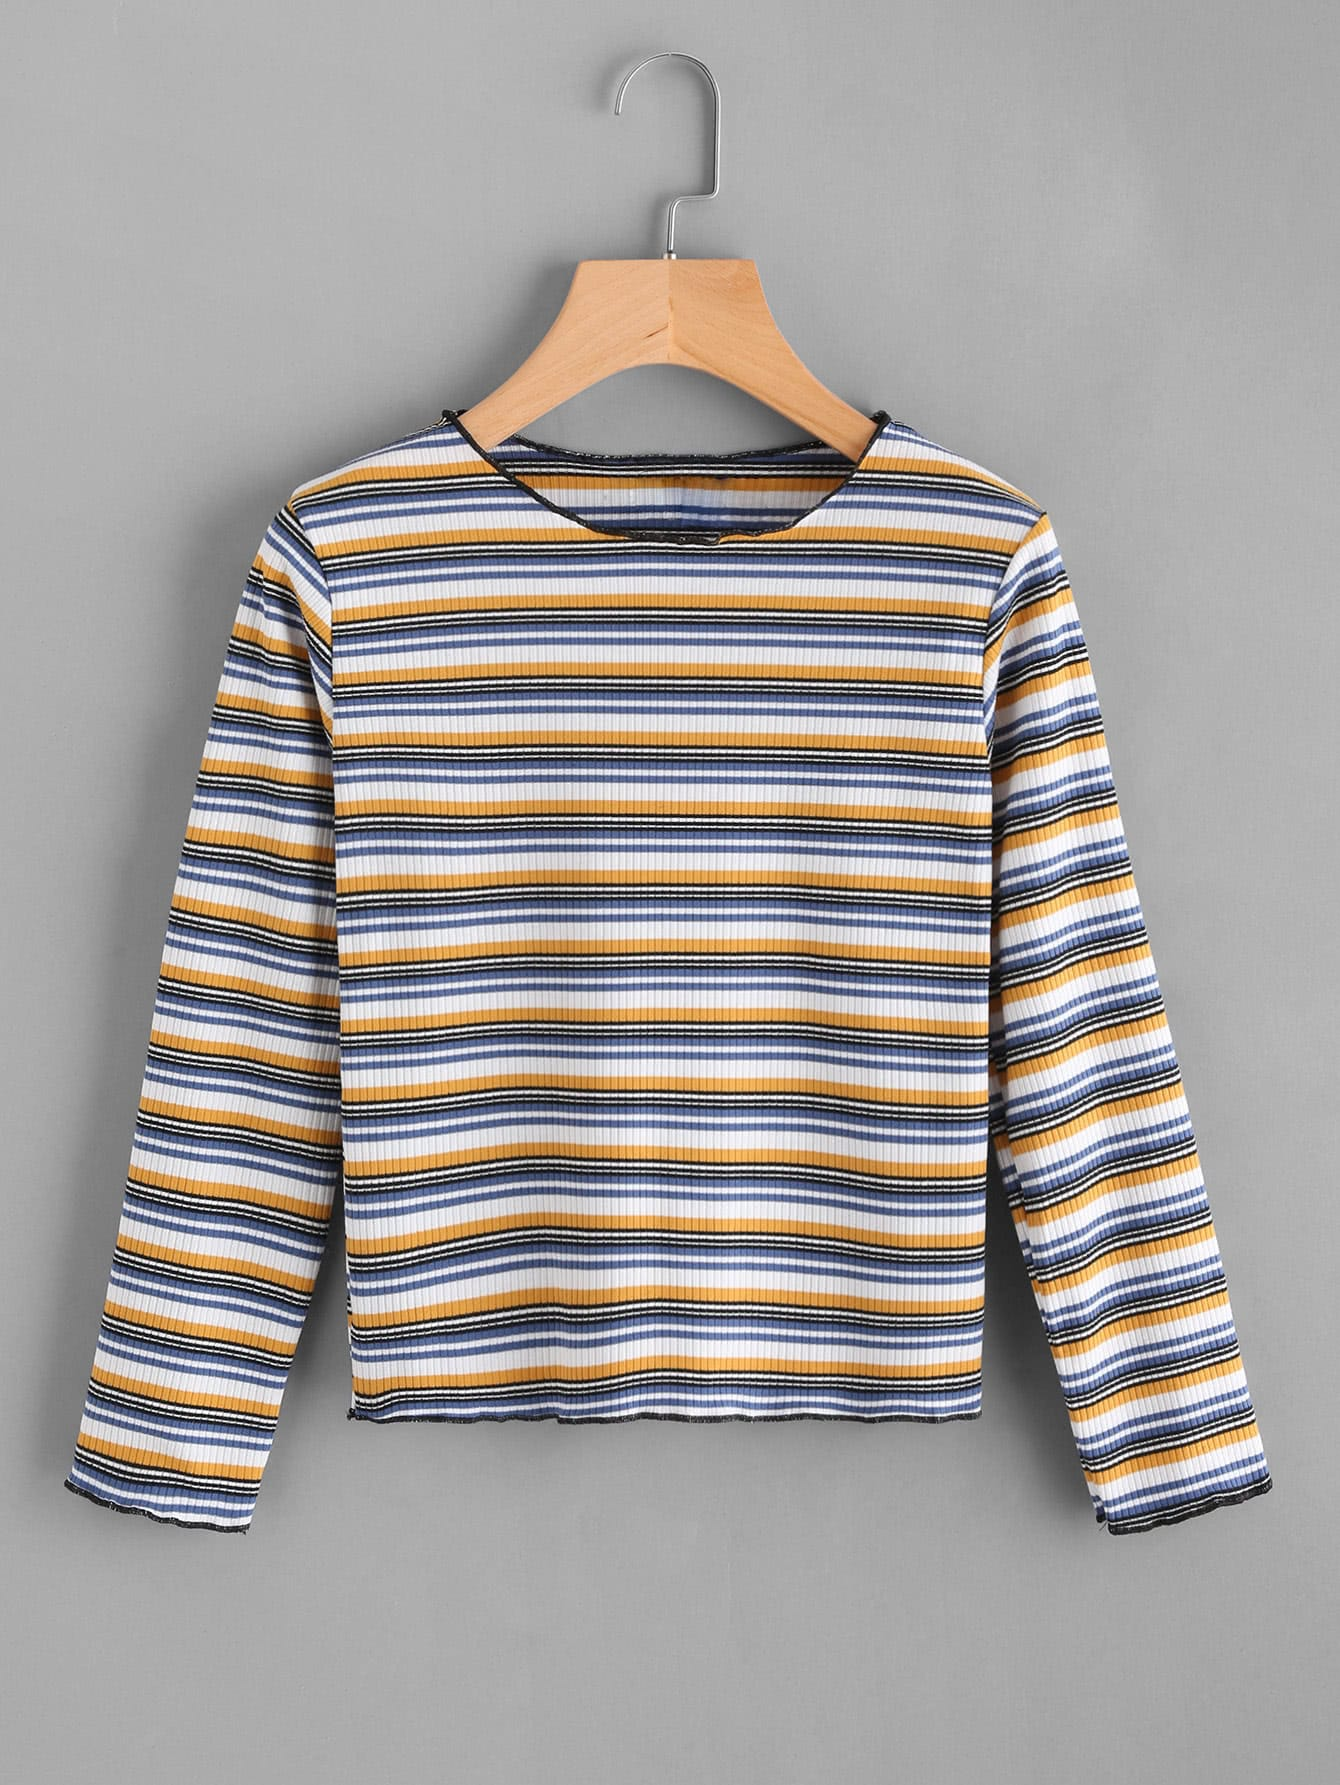 Contrast Striped Ribbed Knit Tee color block knit ribbed tee